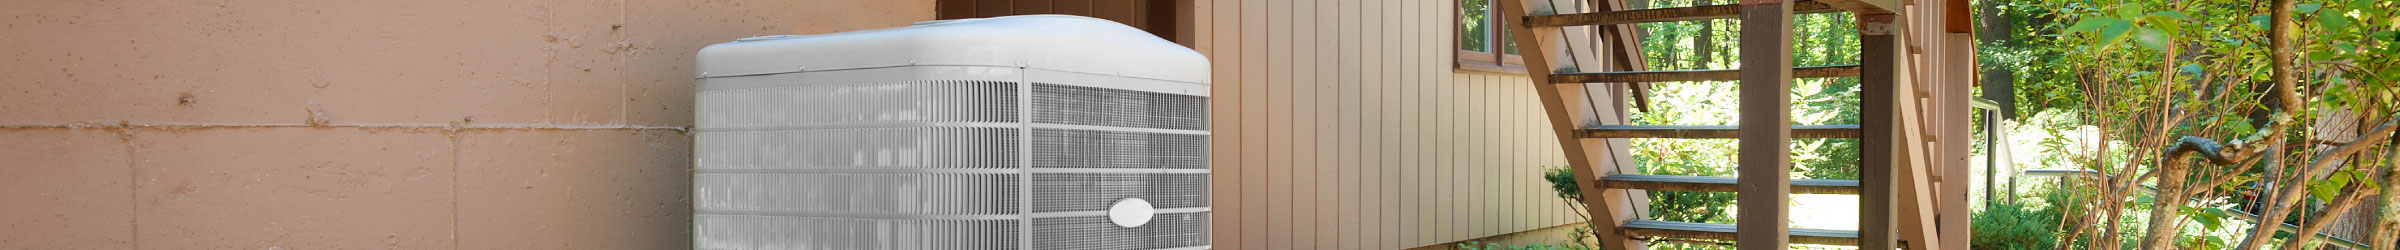 Harmonic Heating & Air Conditioning is here for you! Call us today when you need heating, air conditioning, water heating, air quality or commercial HVAC services! Harmonic is your local comfort expert!